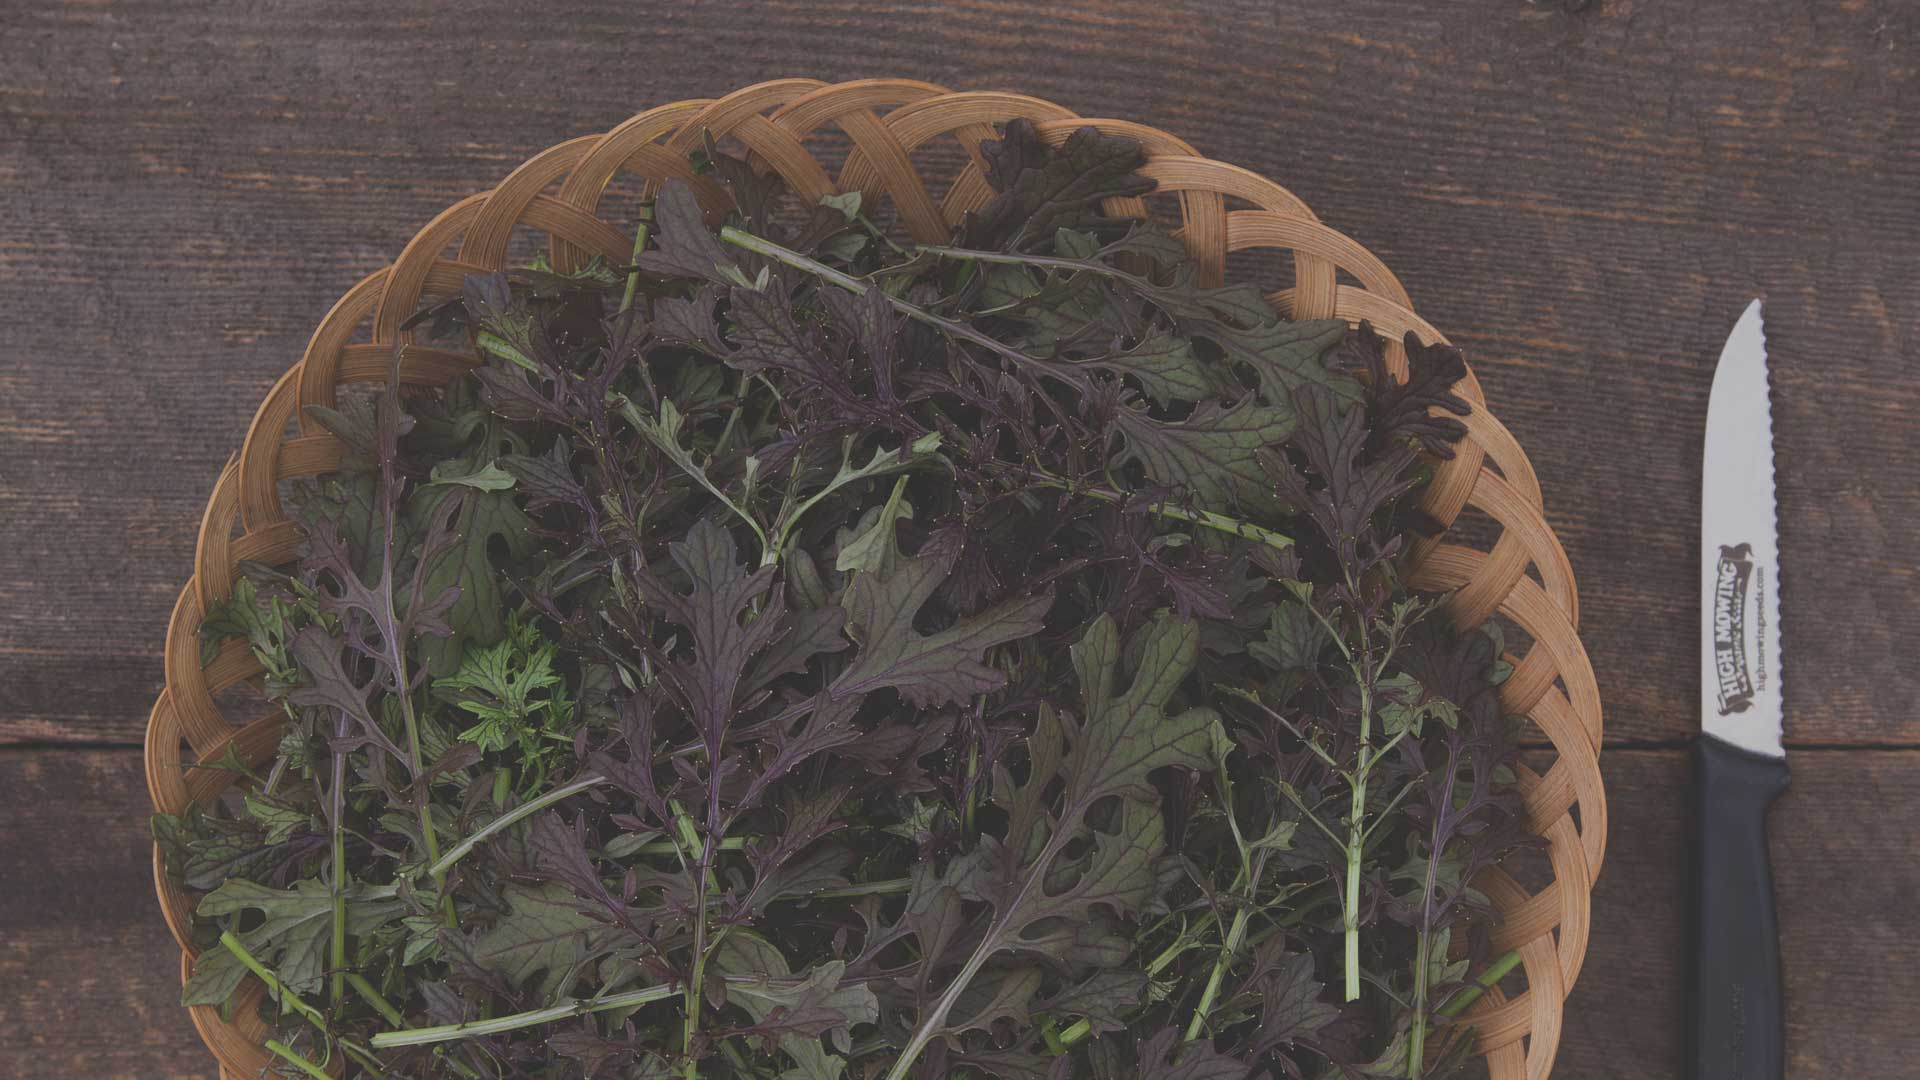 Organic Red Lace Mustard Greens from High Mowing Organic Seeds